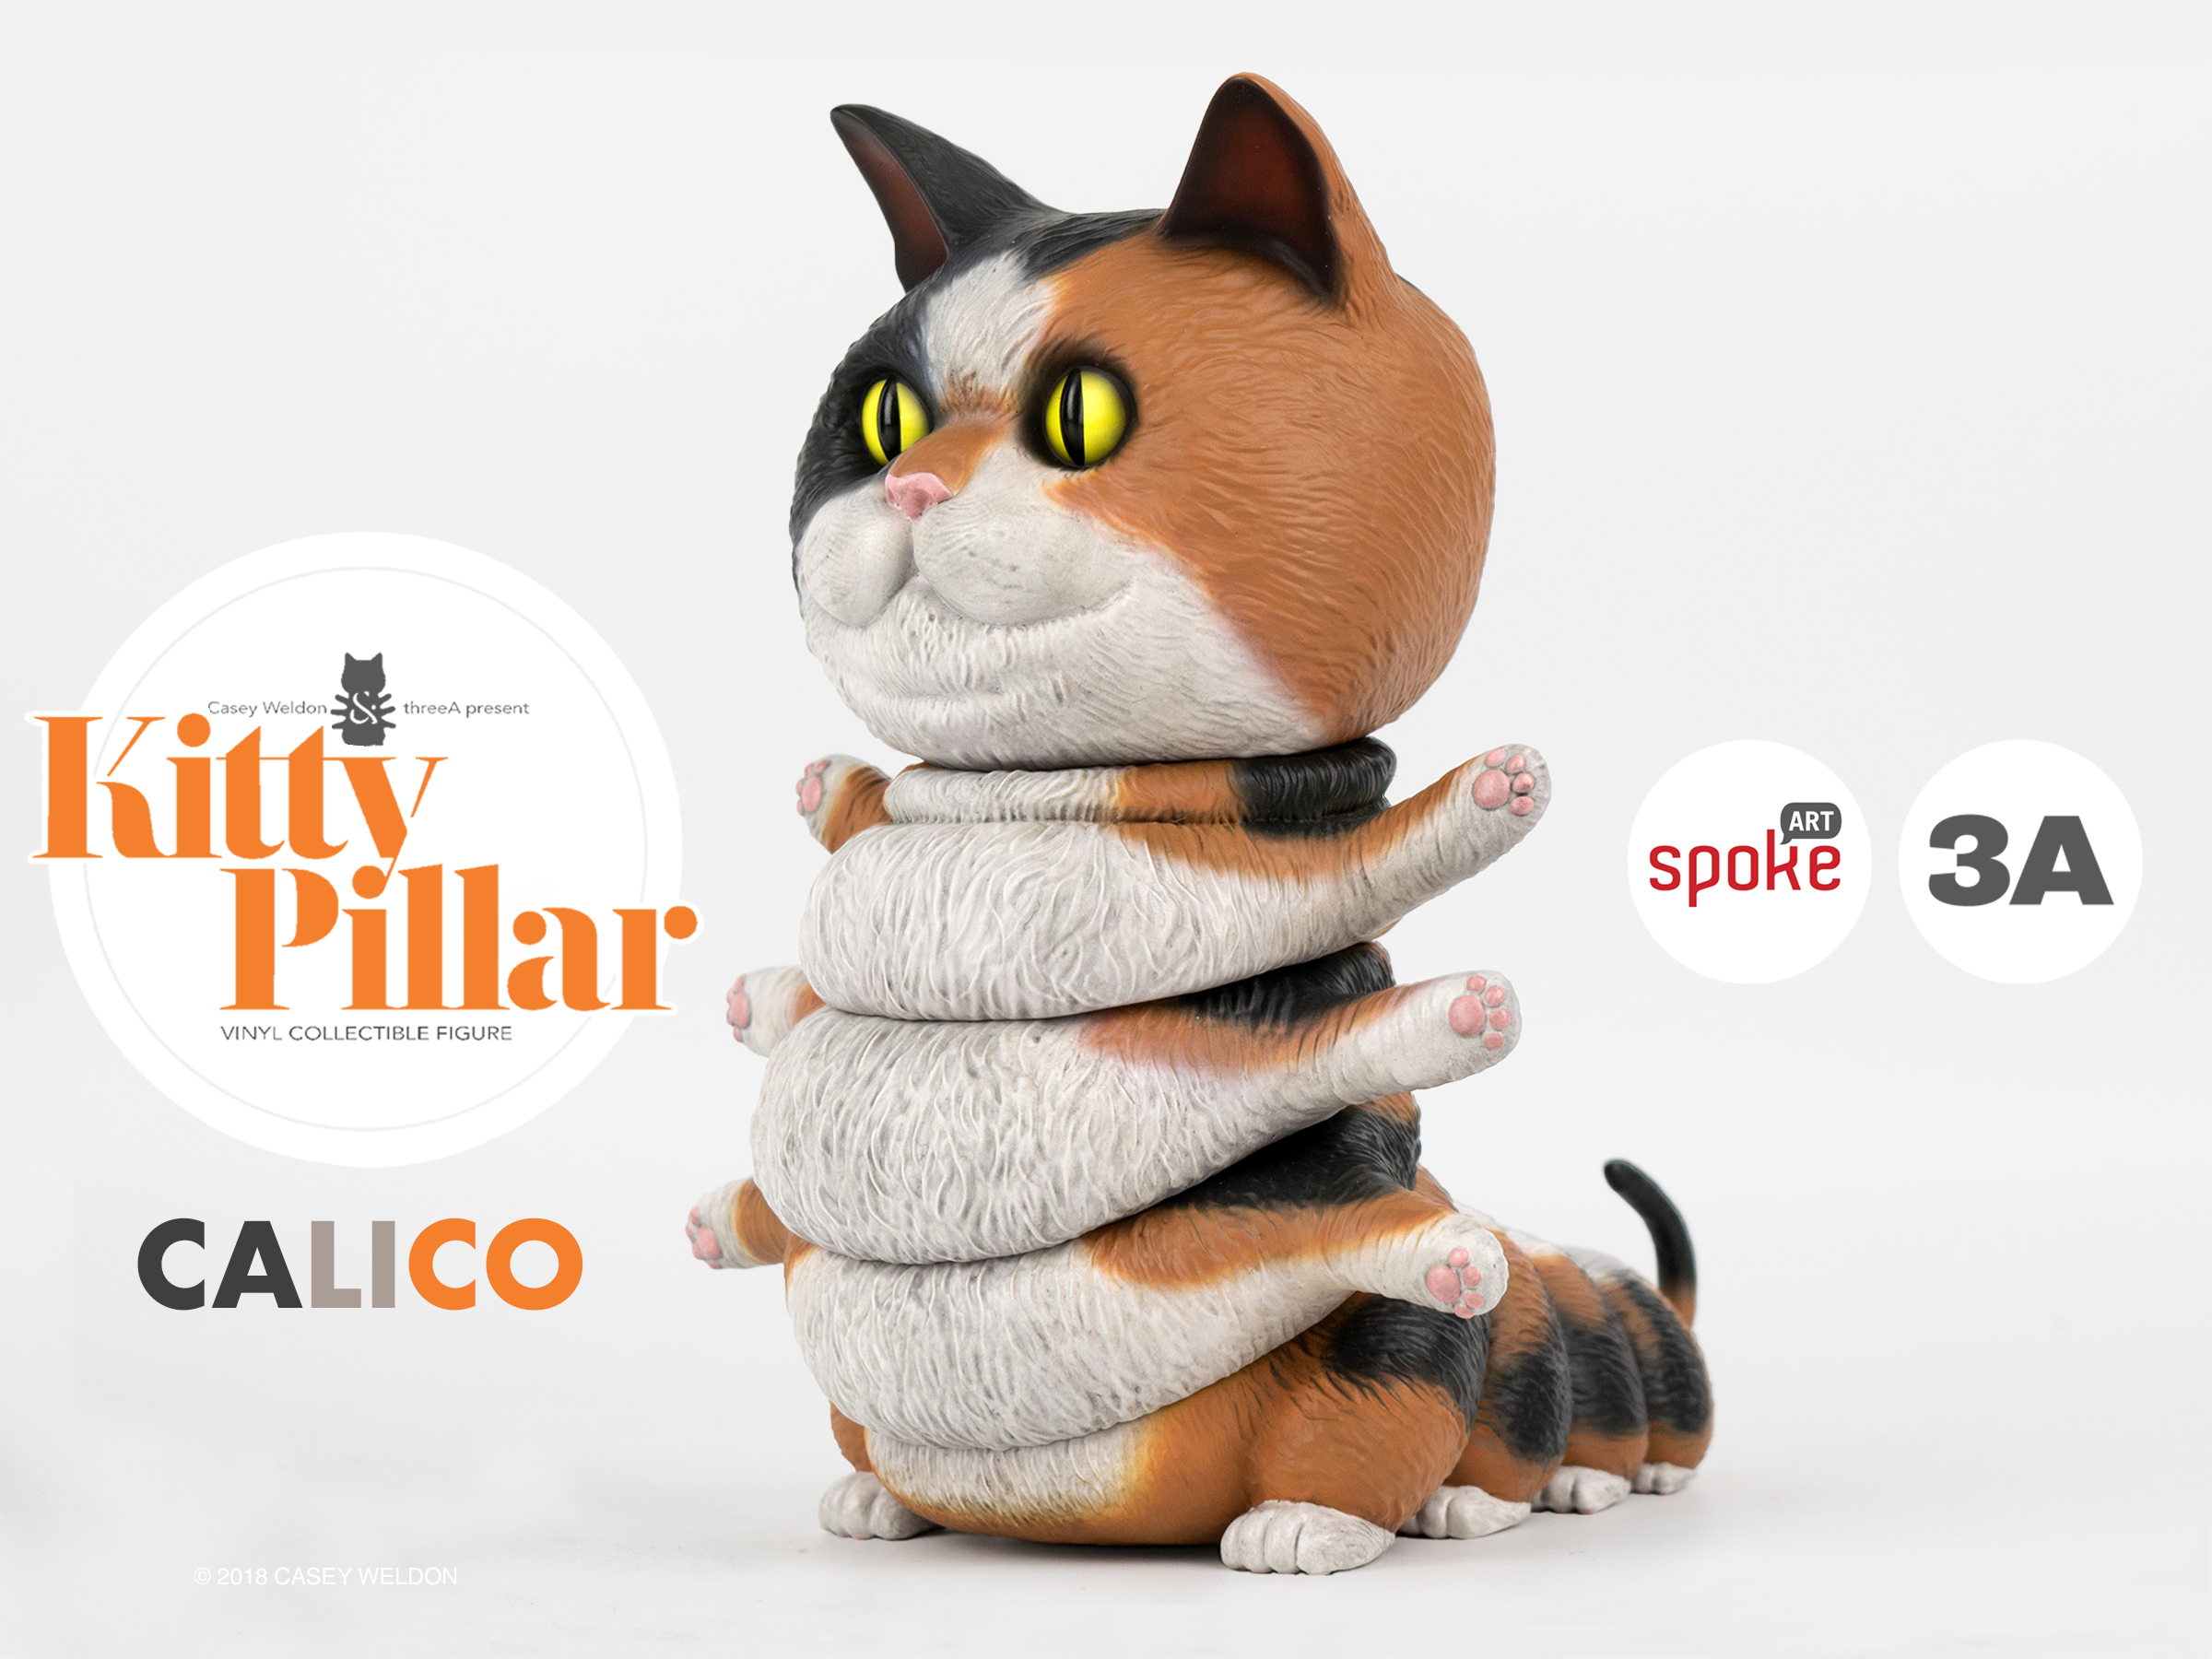 Calico Kittypillar now available at Spoke Art!